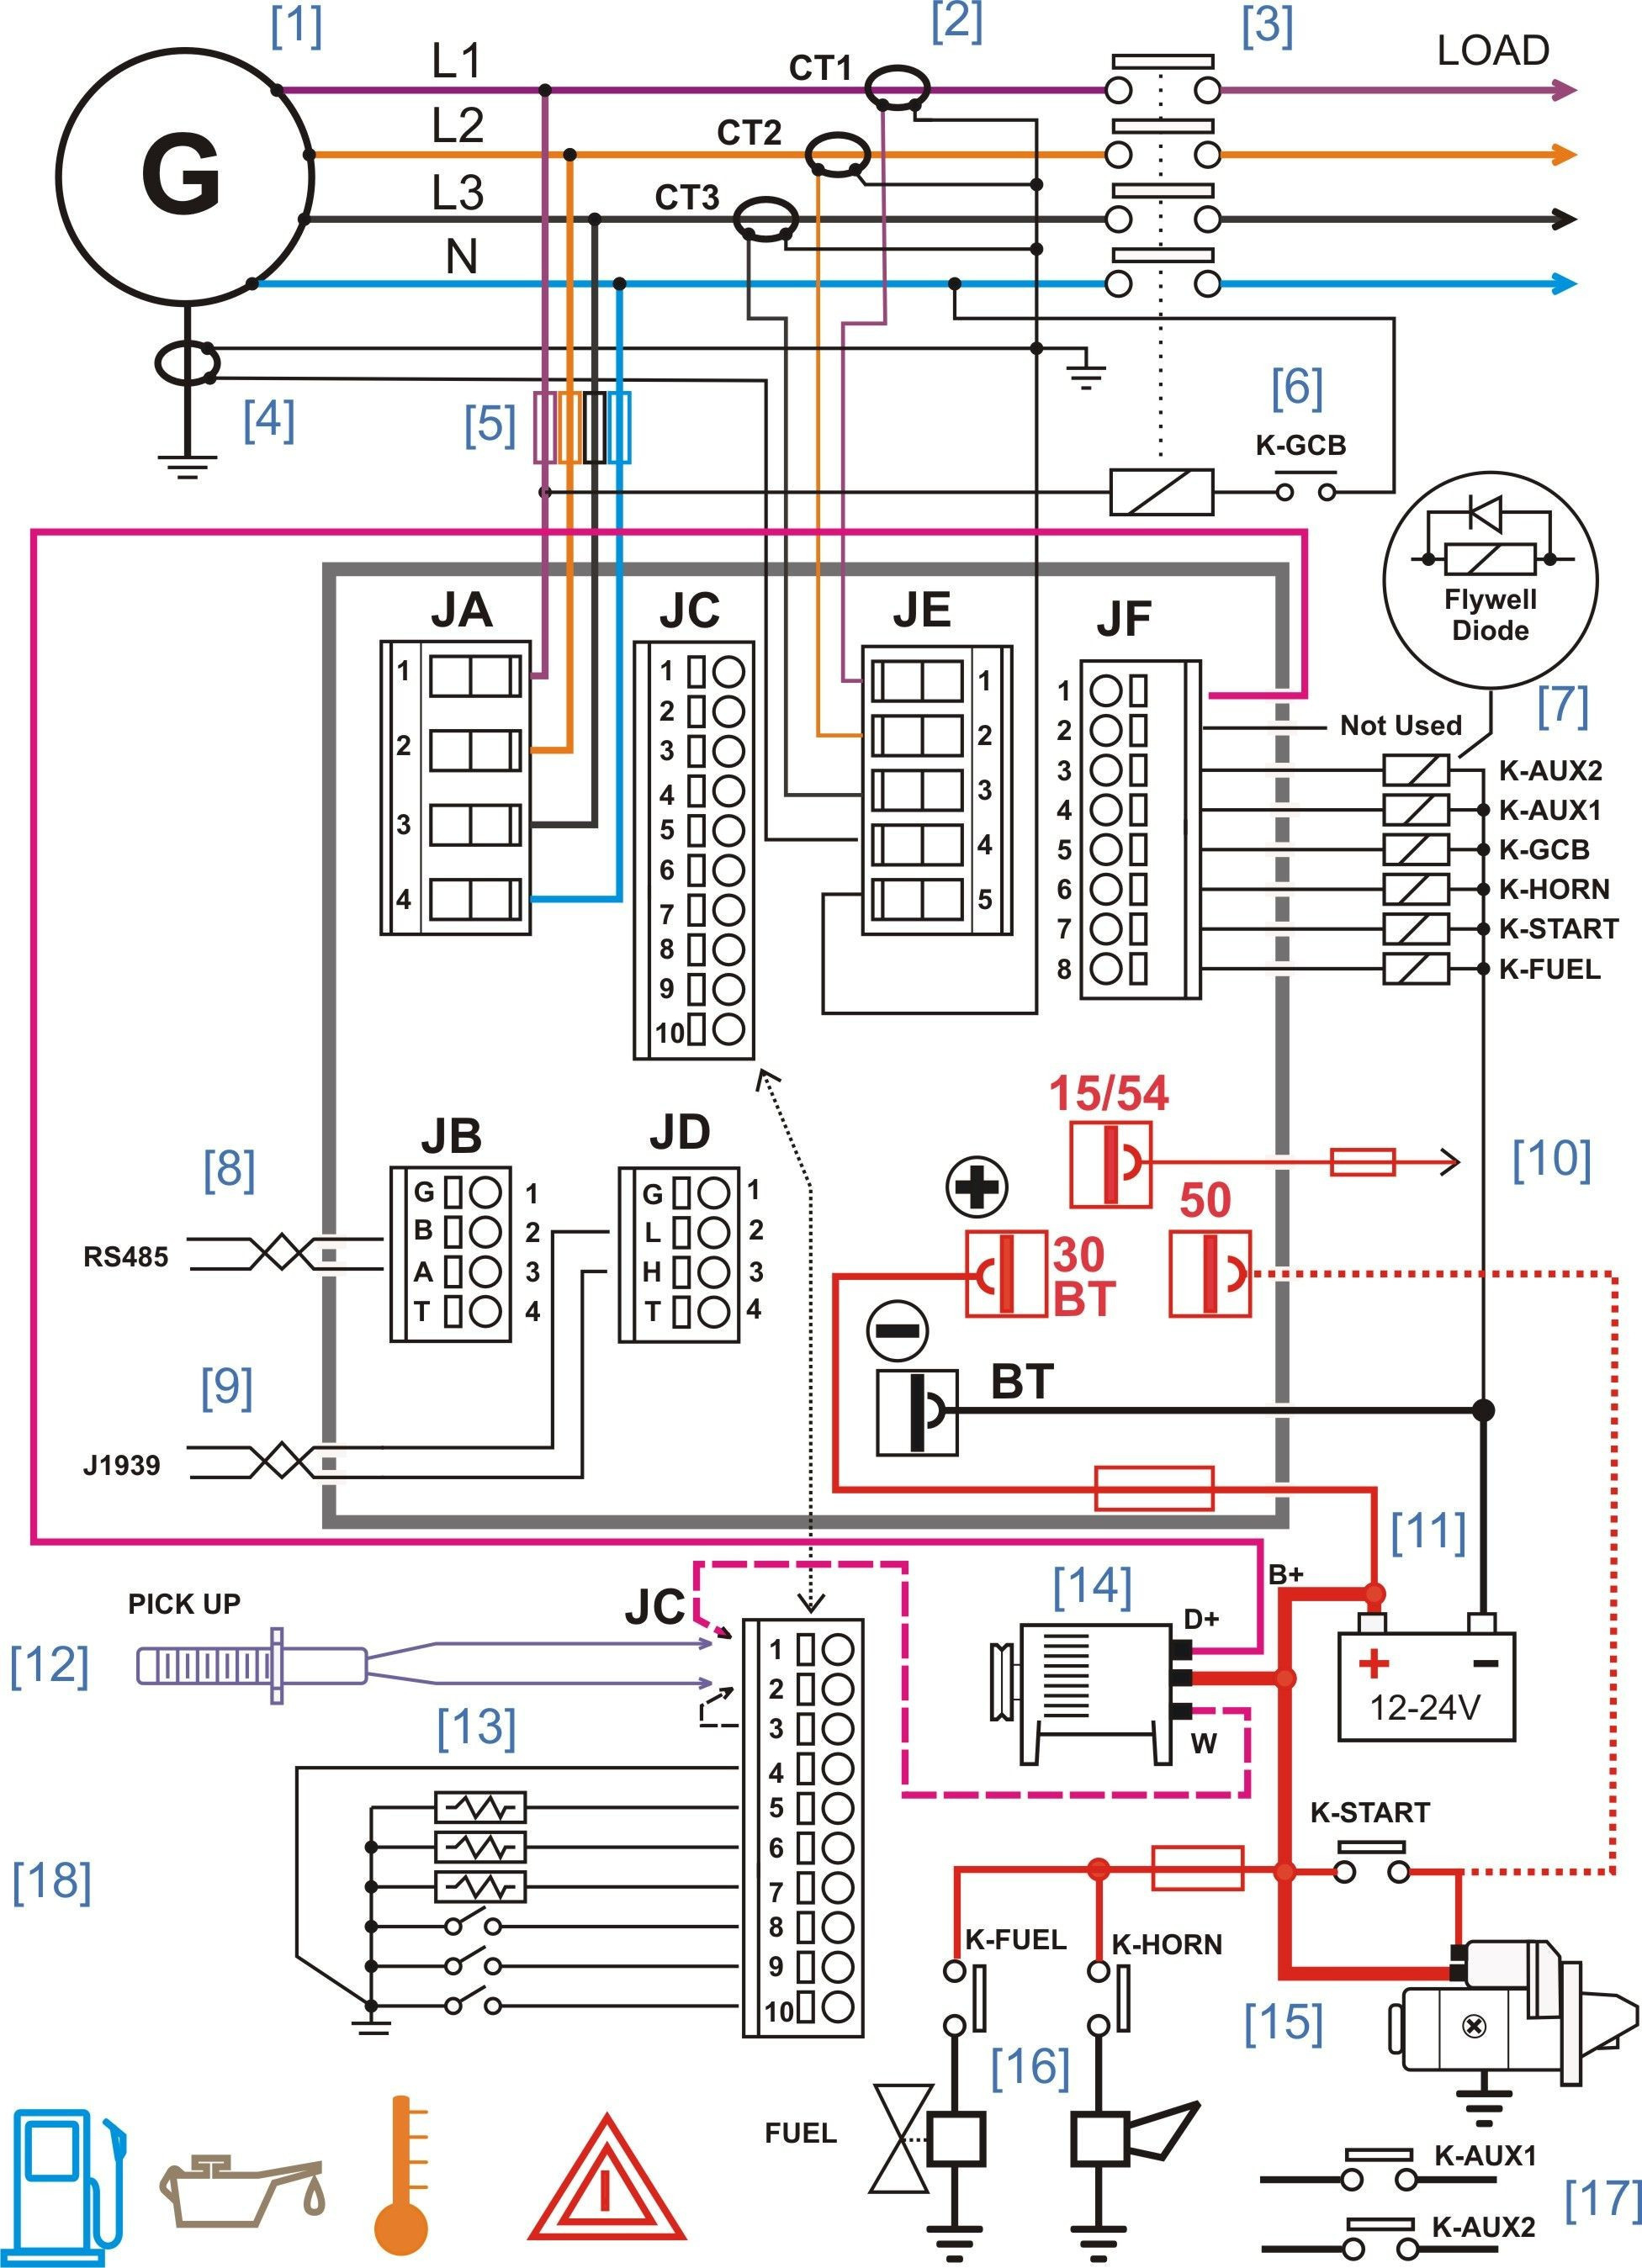 olympian generator wiring diagram 4001e Download-Caterpillar Generator Wiring Diagram Inspirationa New Wiring Diagram 8-d